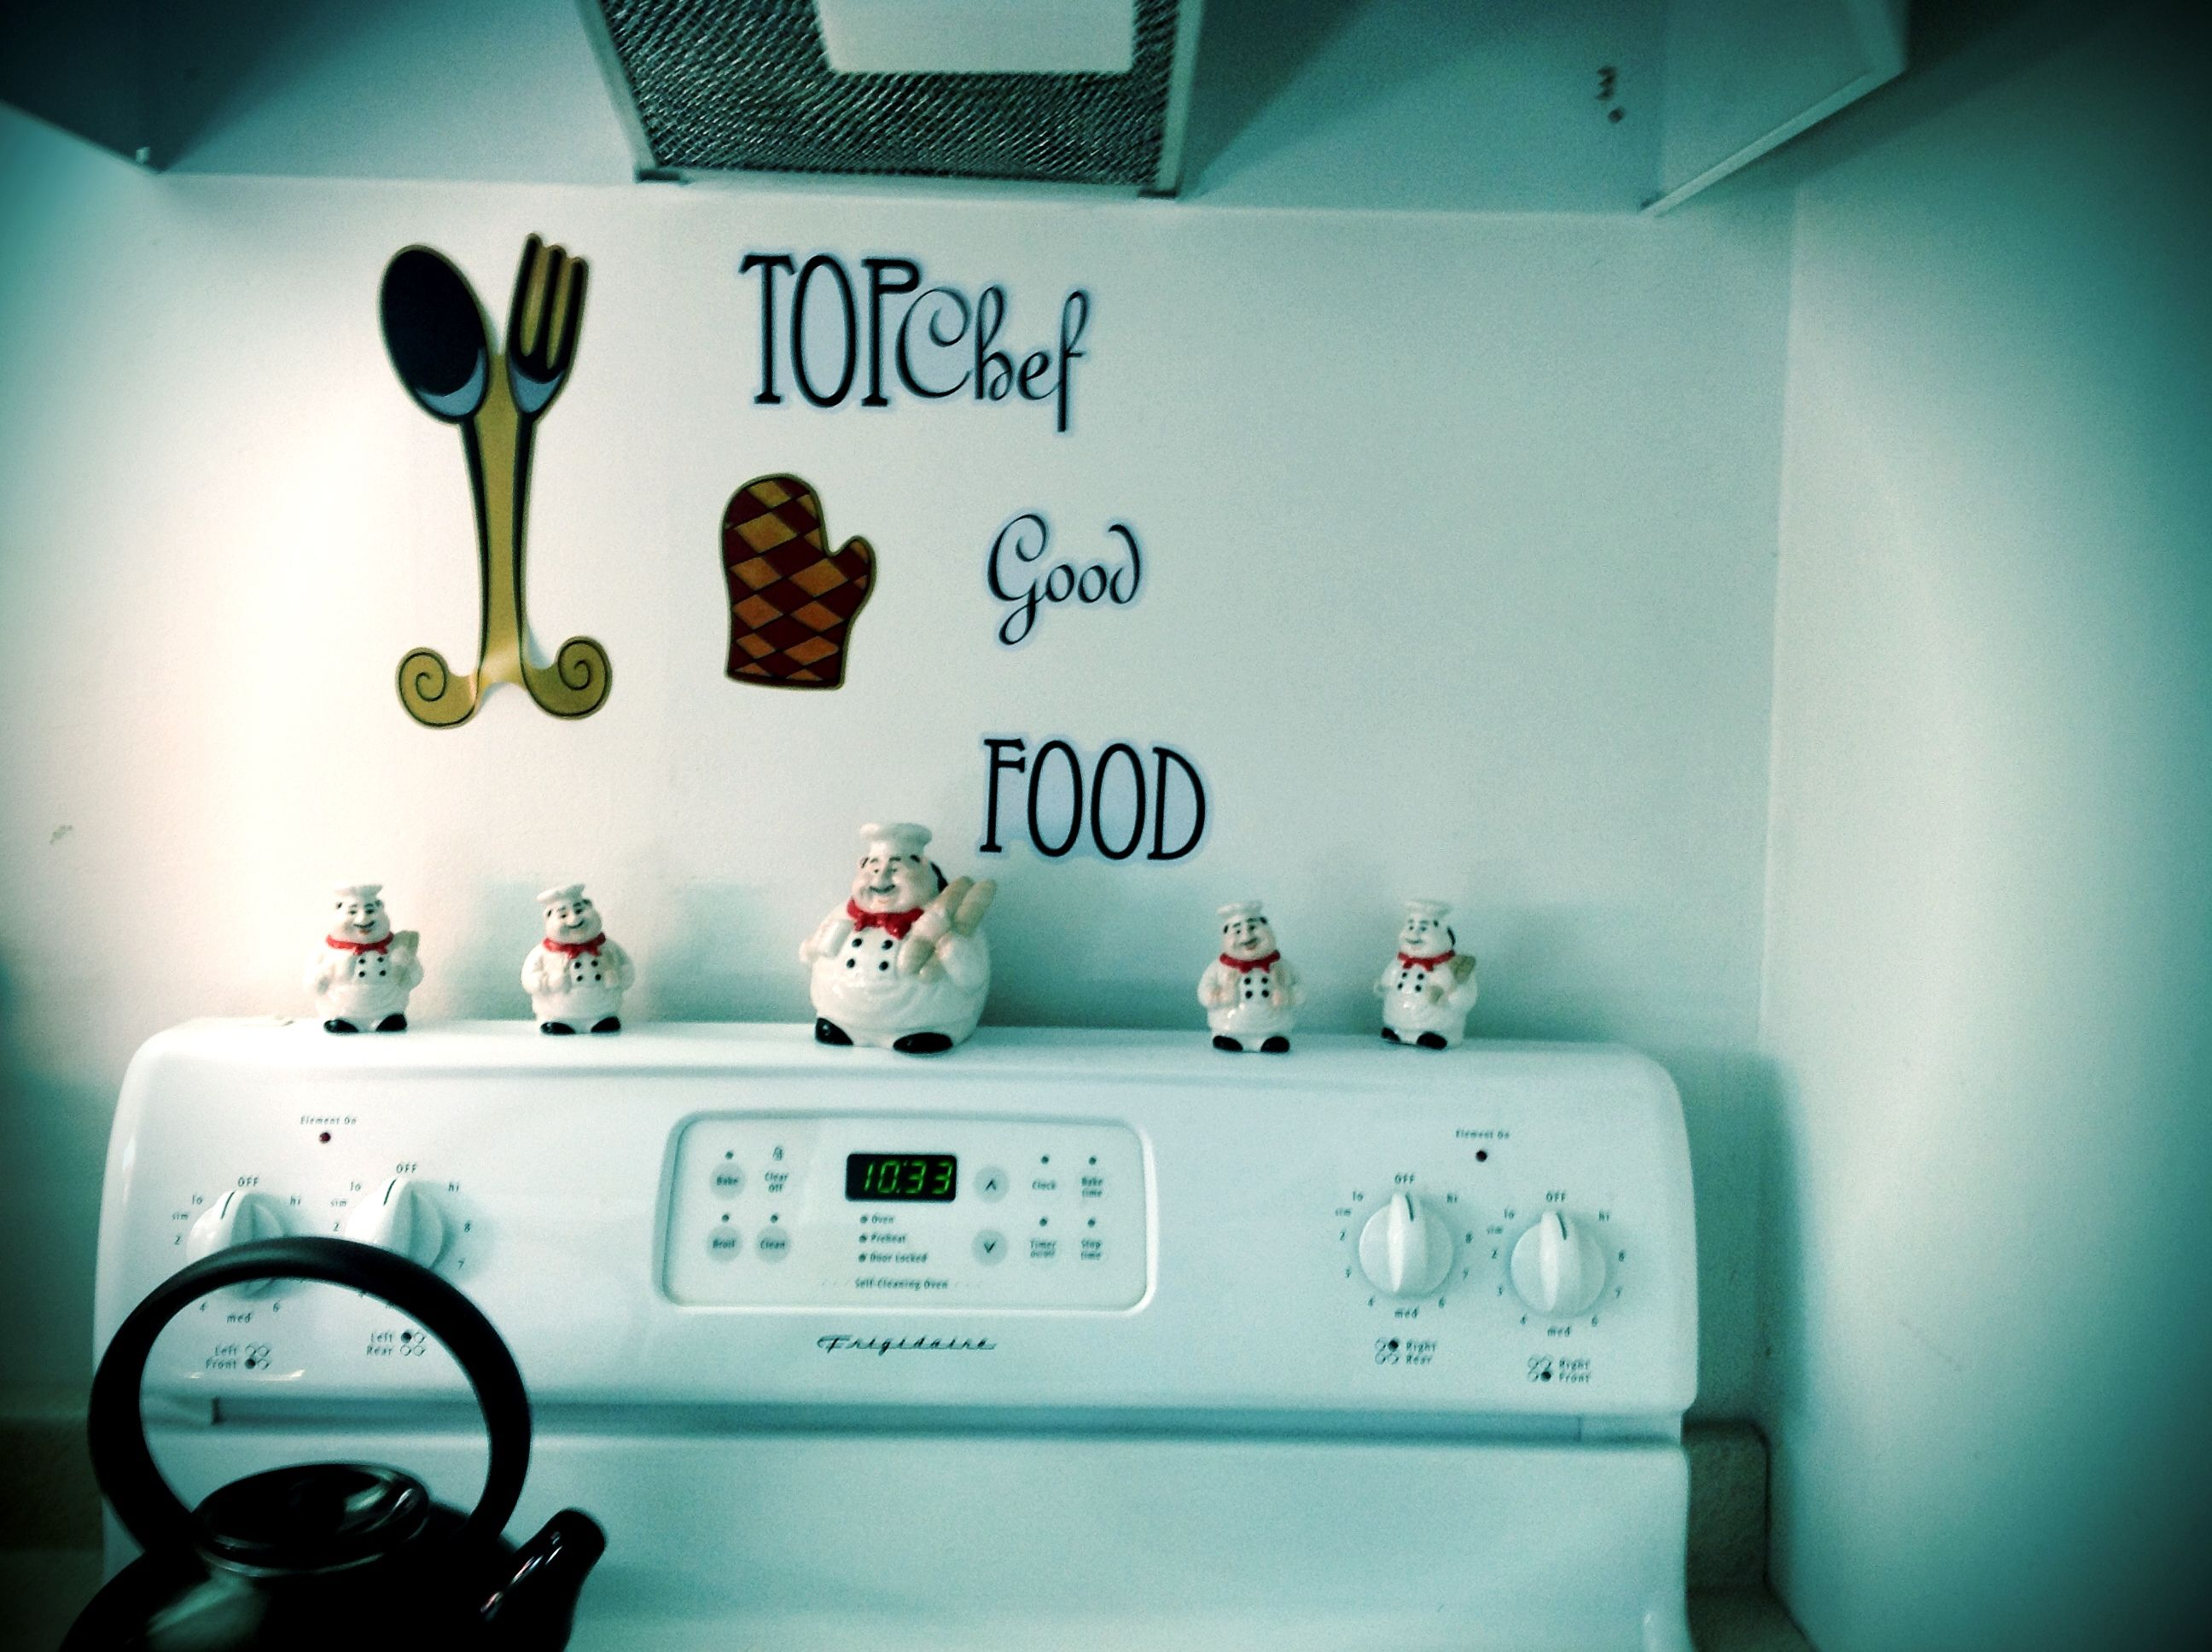 Chef decor for kitchen Stickers only $ 3.00 @ Family Dollar ...